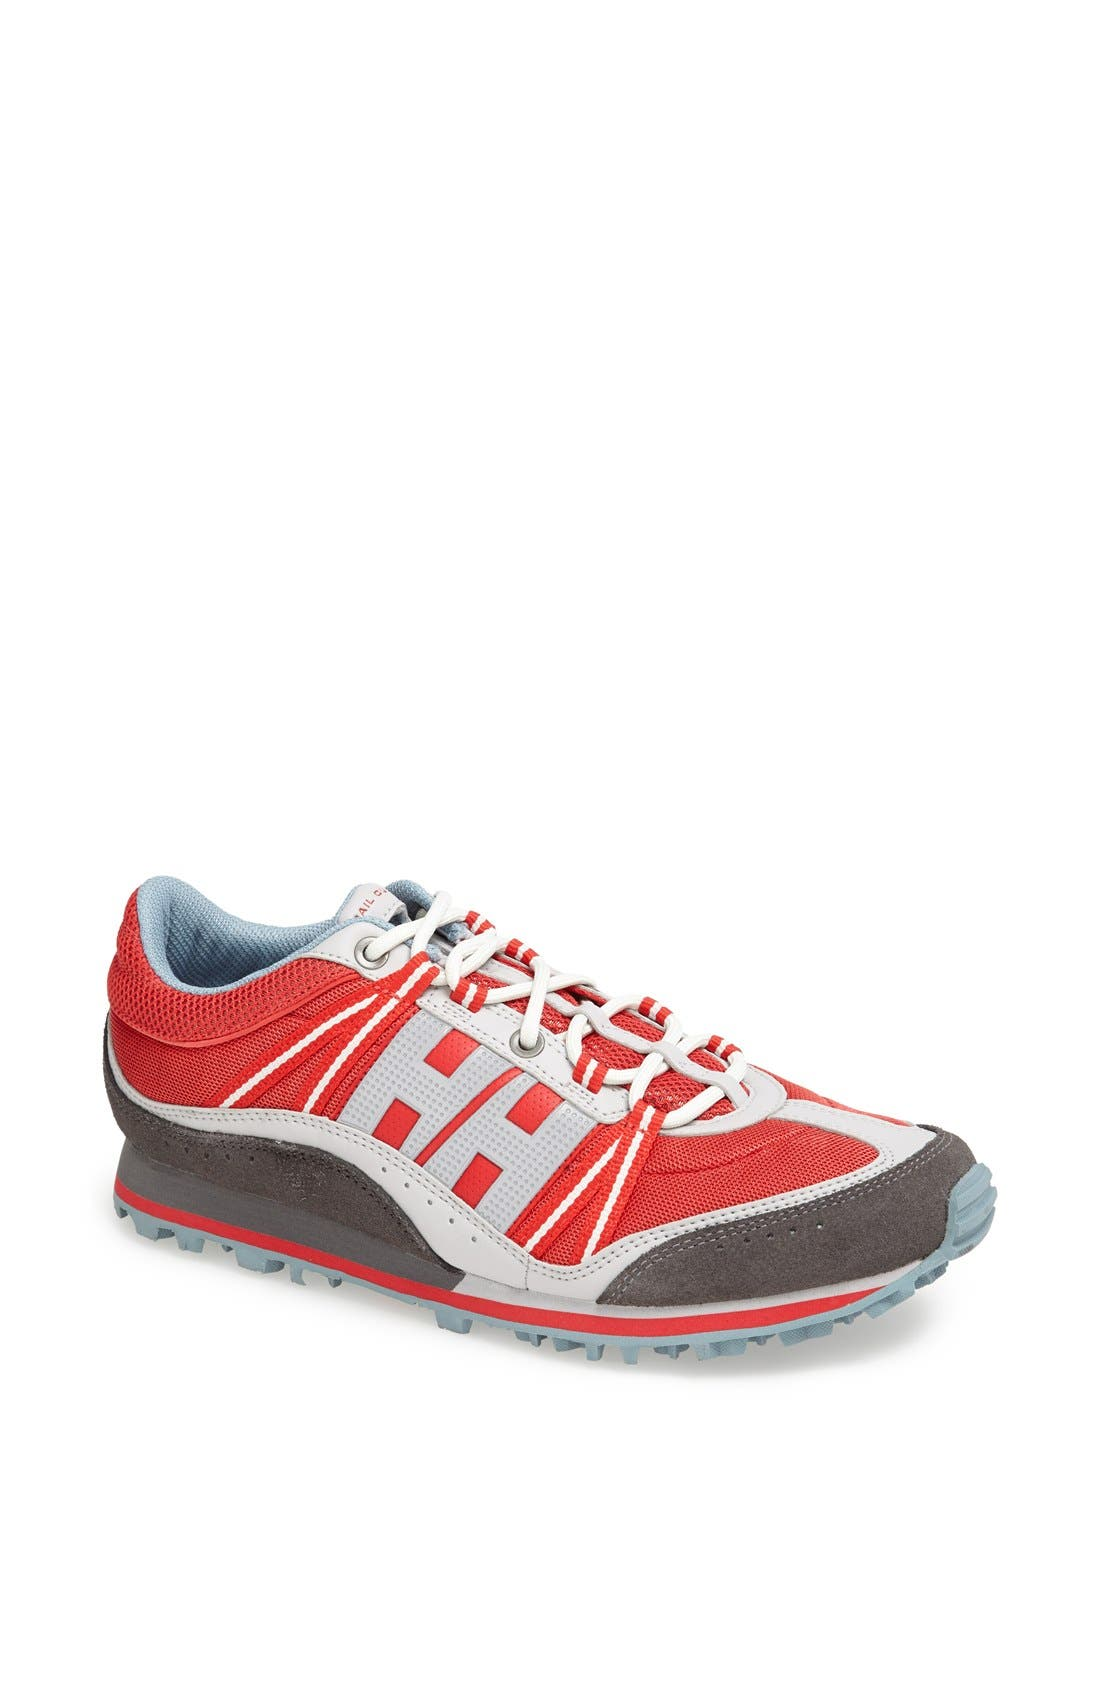 Alternate Image 1 Selected - Helly Hansen 'Trail Cutter 5' Running Shoe (Women)